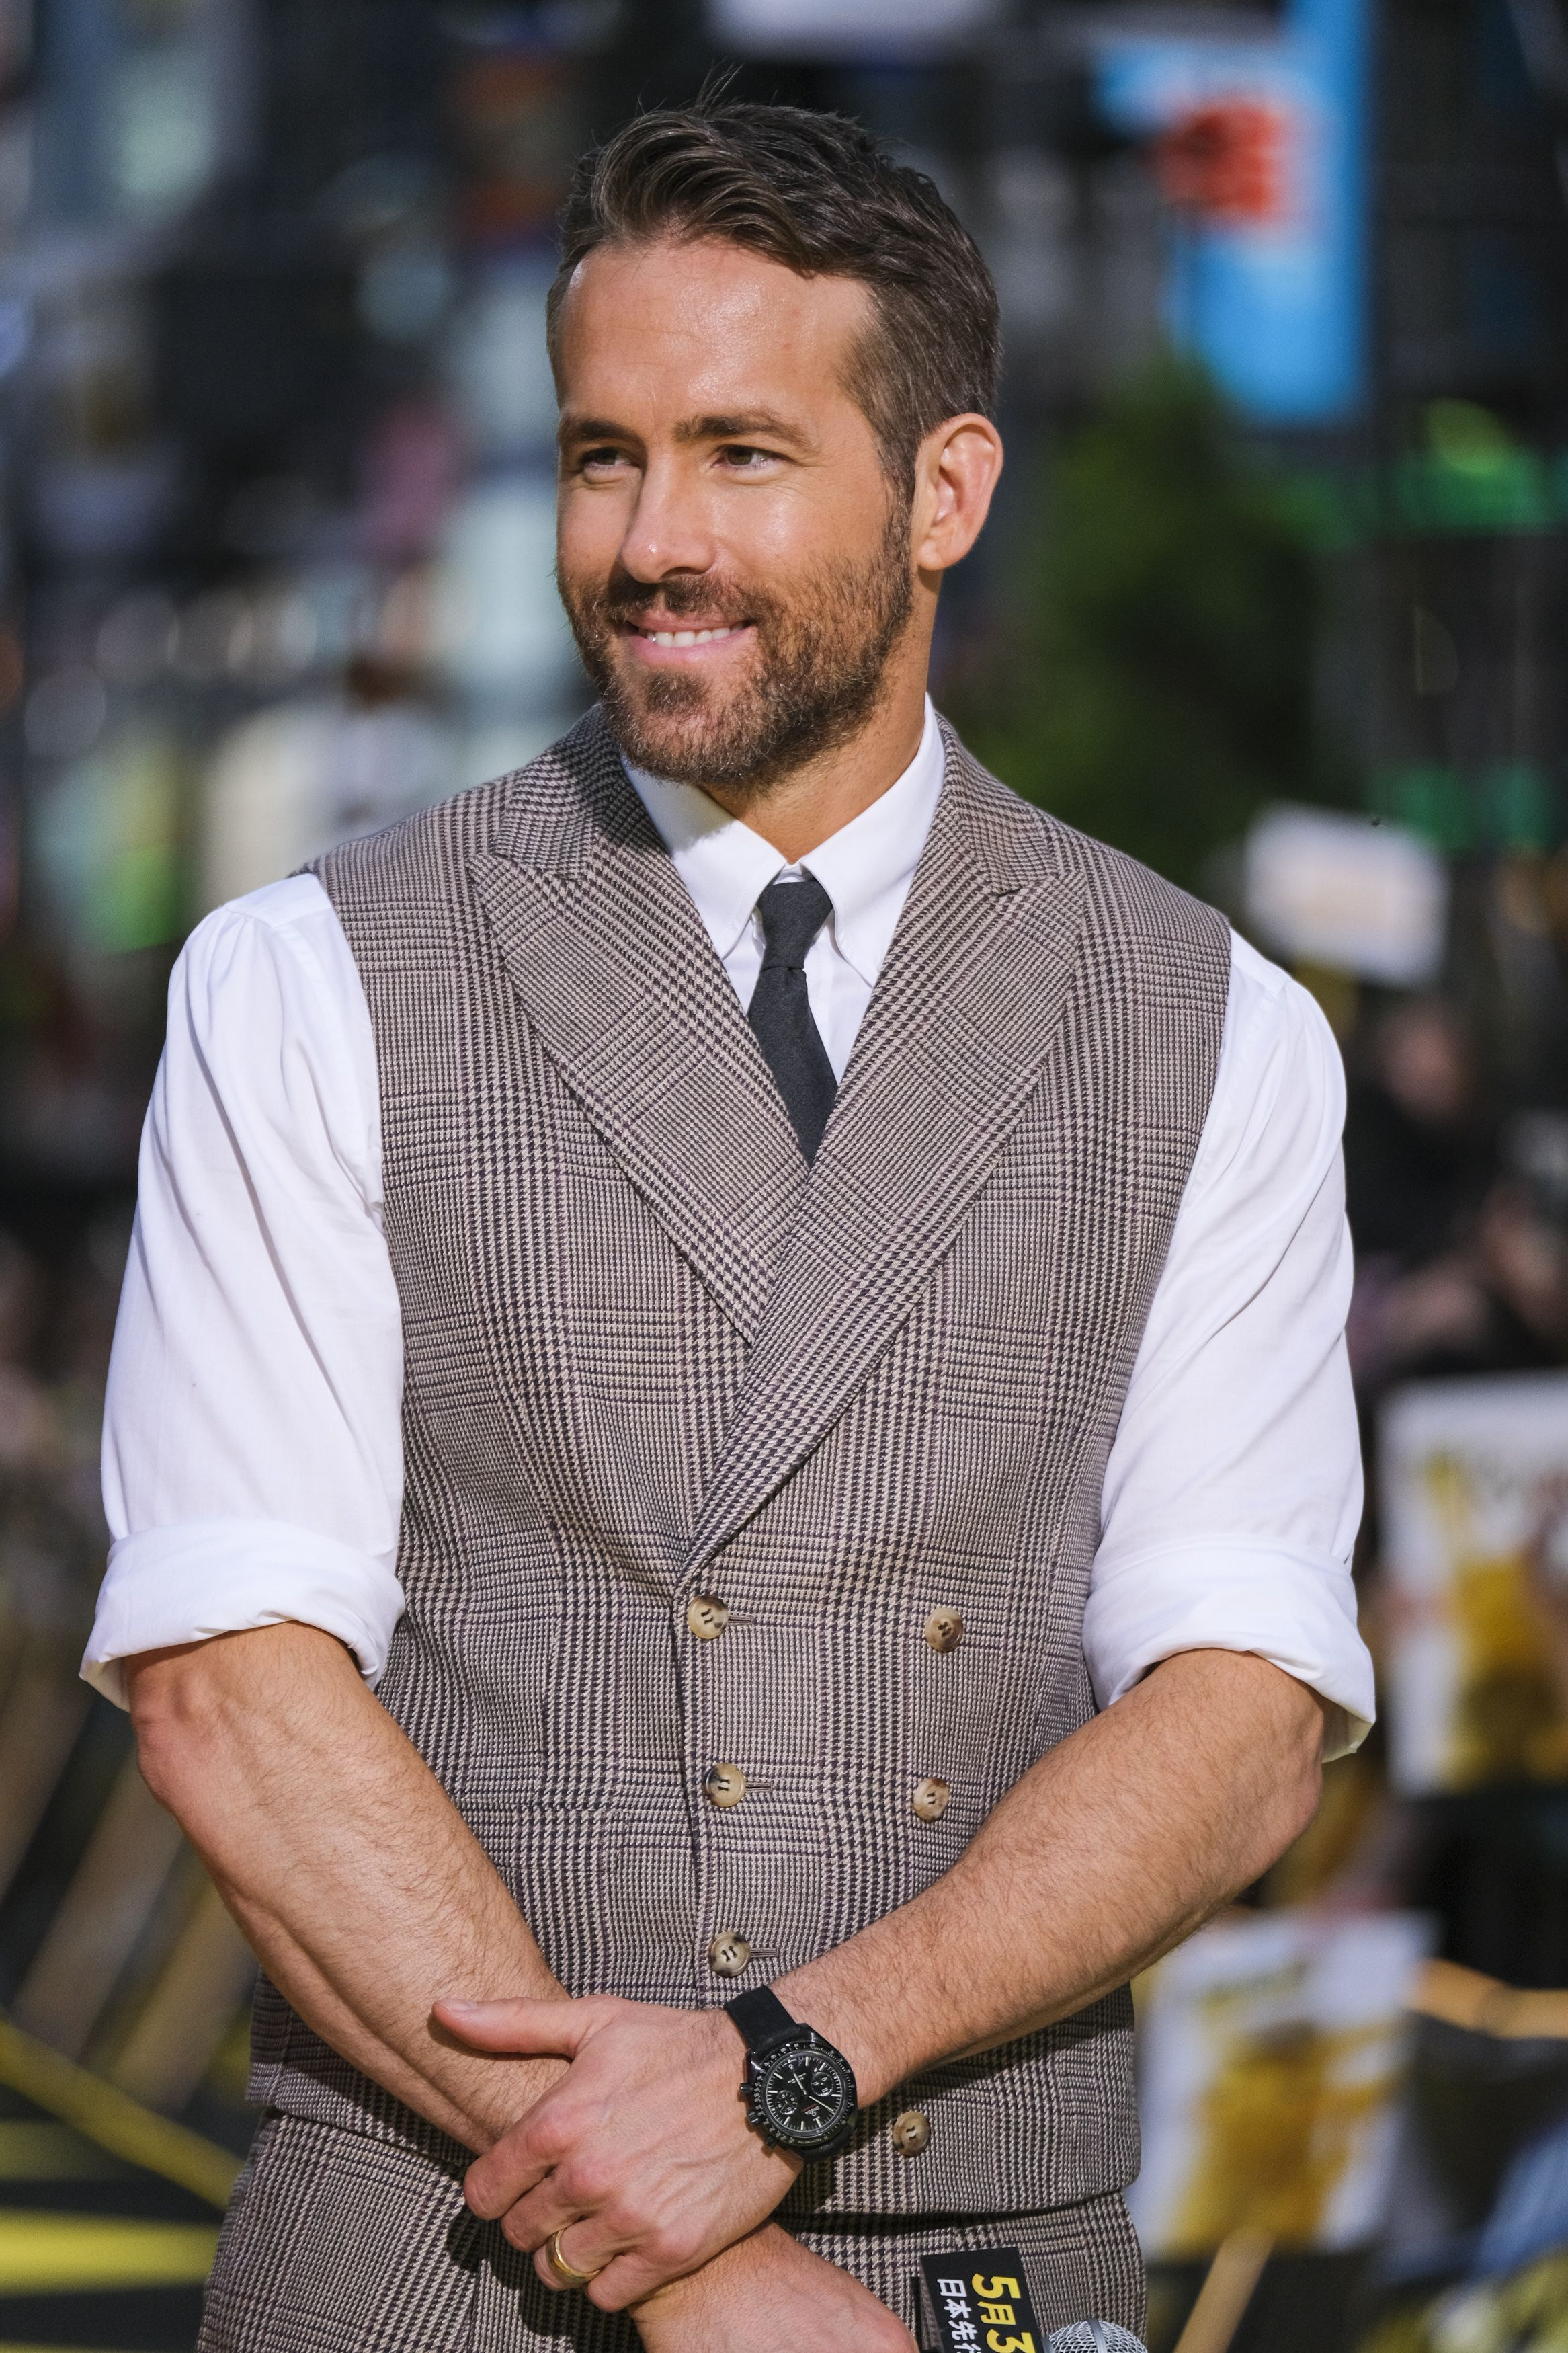 Ryan Reynolds Is Currently One Of The Most Famous Actors